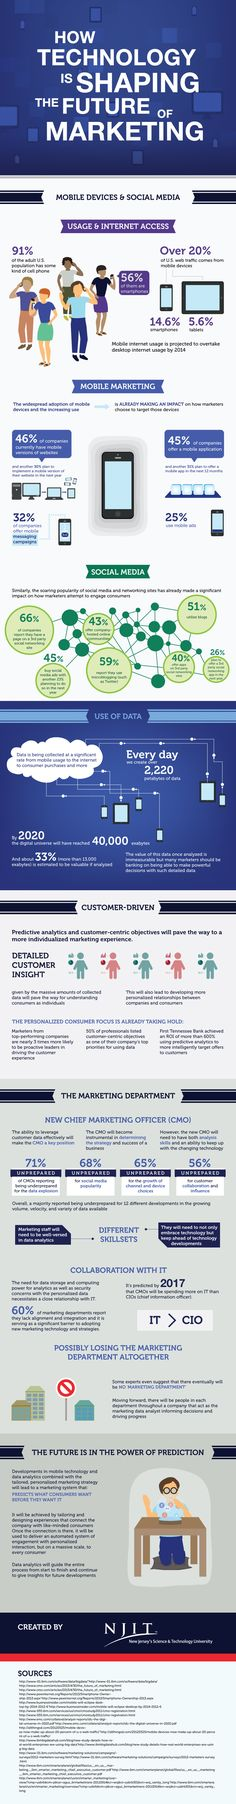 How Technology is Shaping the Future of Marketing [Infographic]